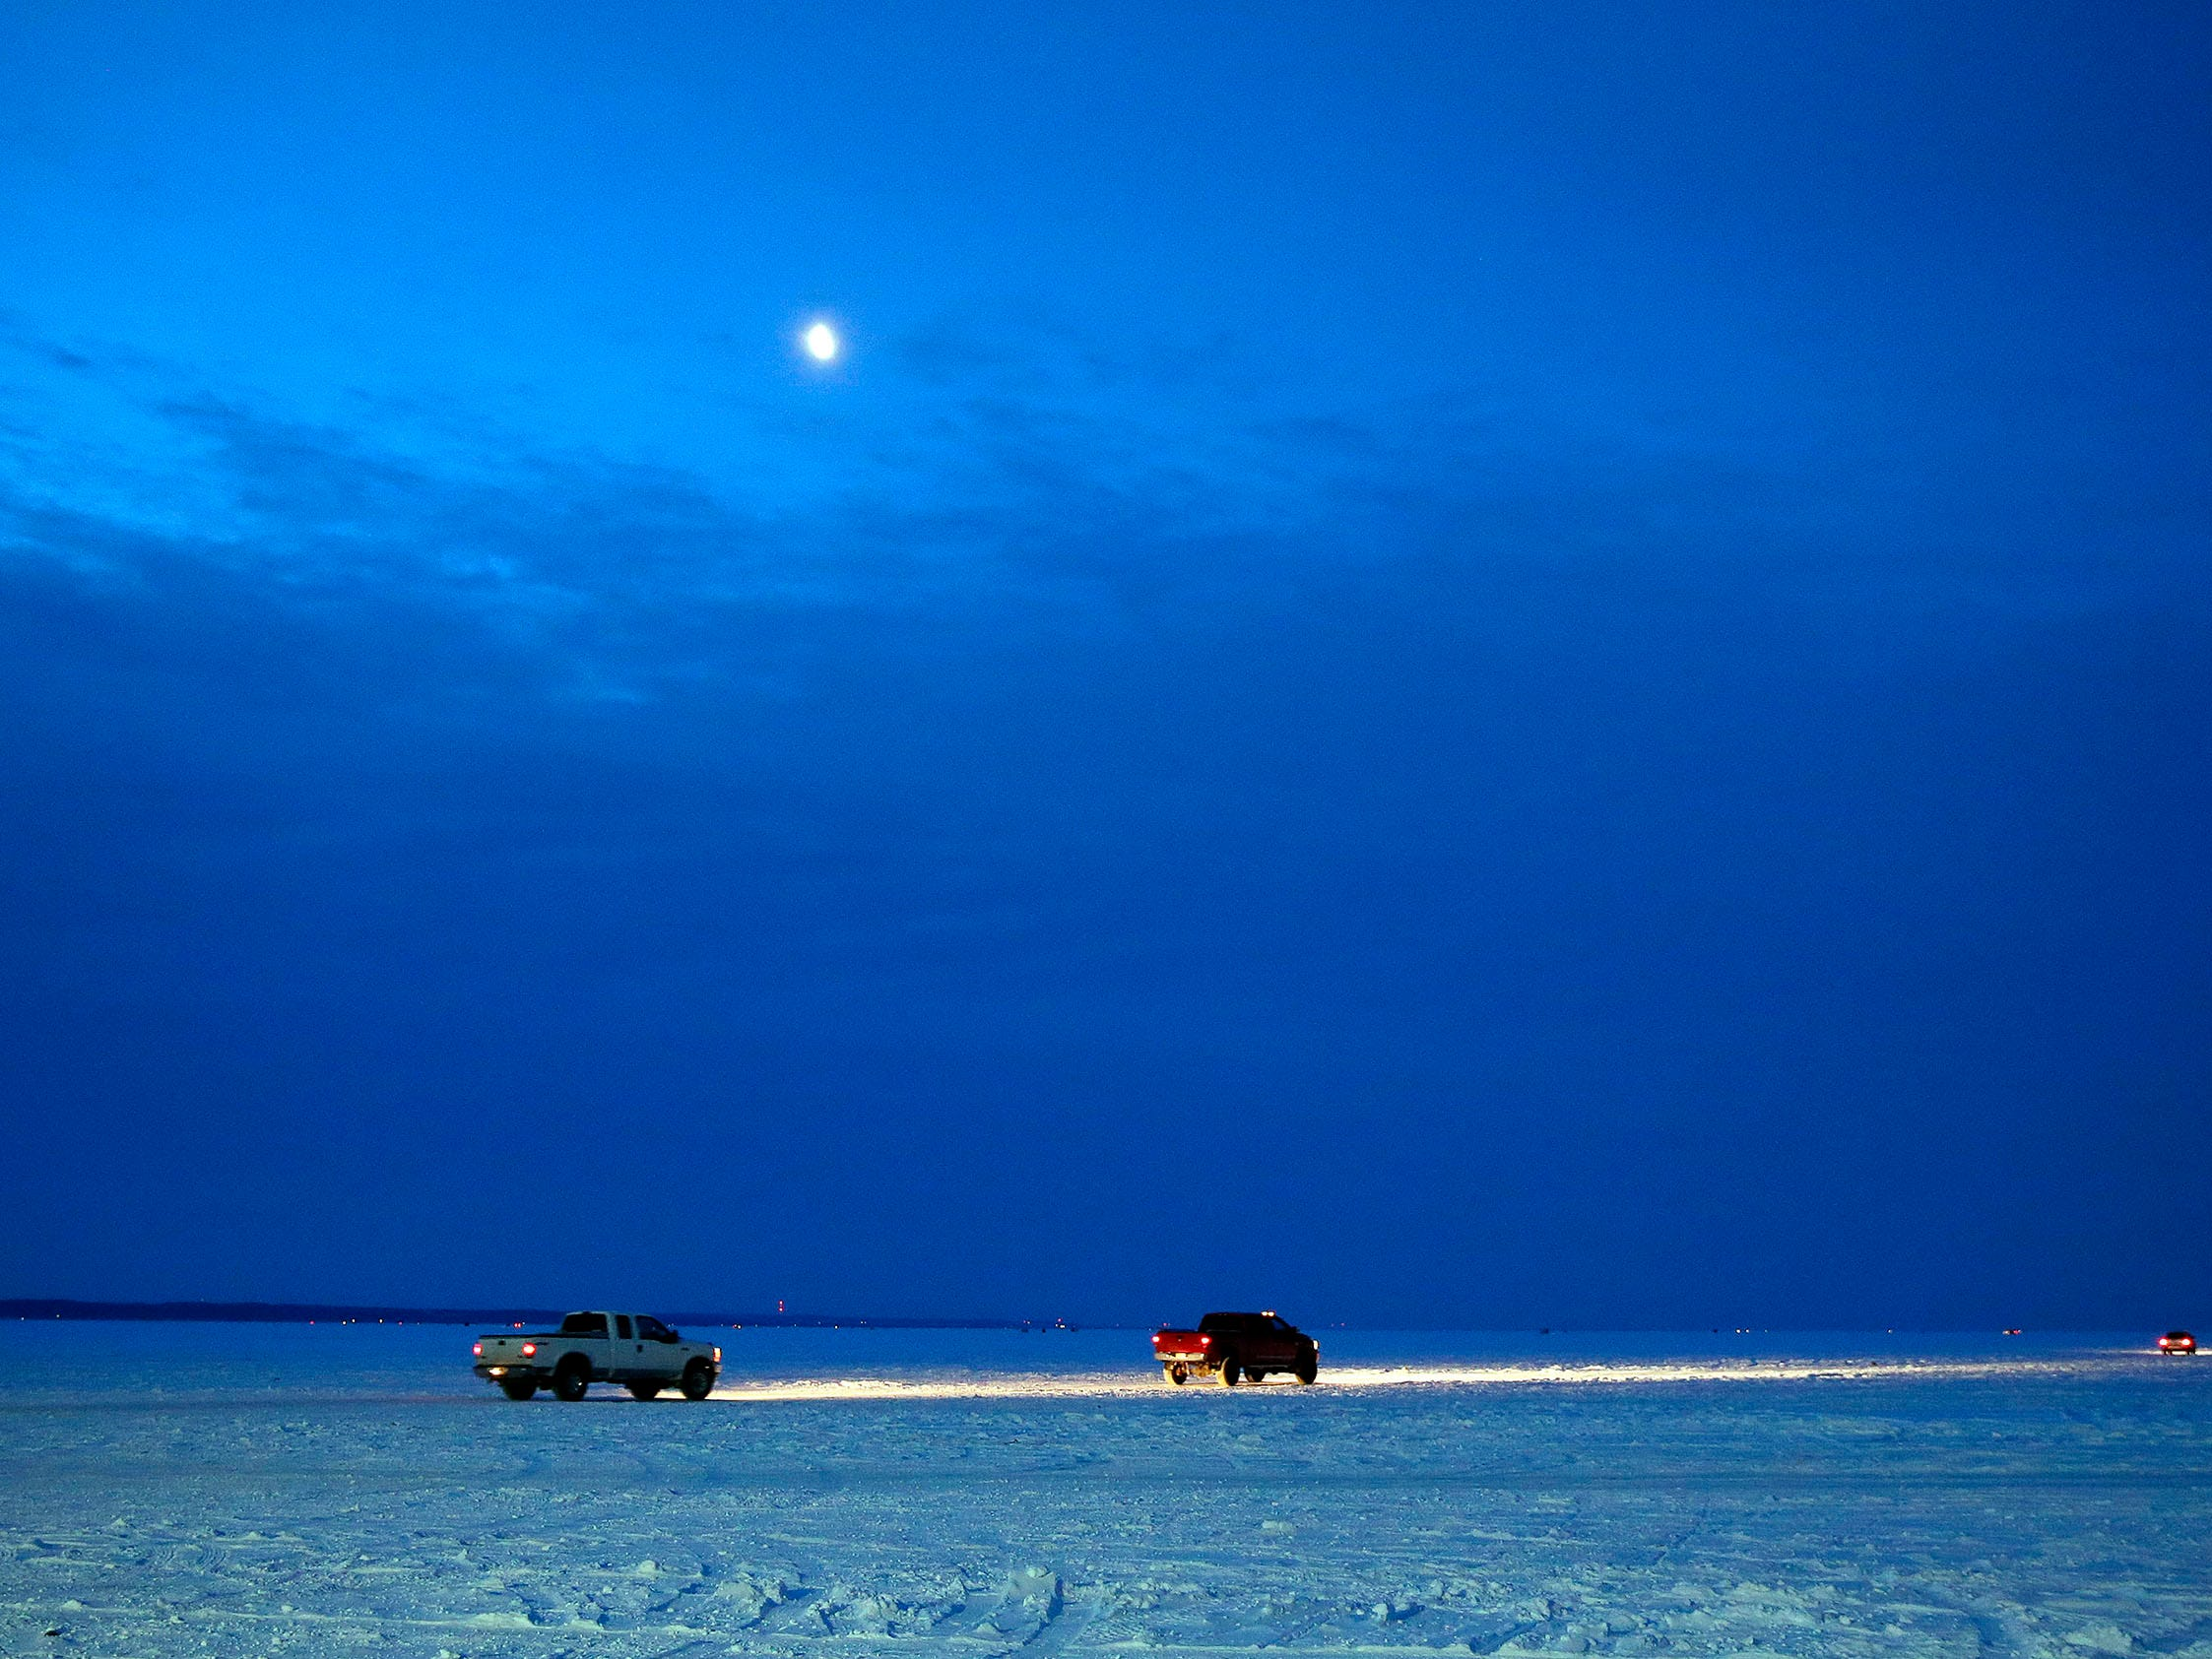 Trucks head across the ice before dawn as sturgeon season opens Saturday, February 10, 2018, on Lake Winnebago near Menasha, Wis.